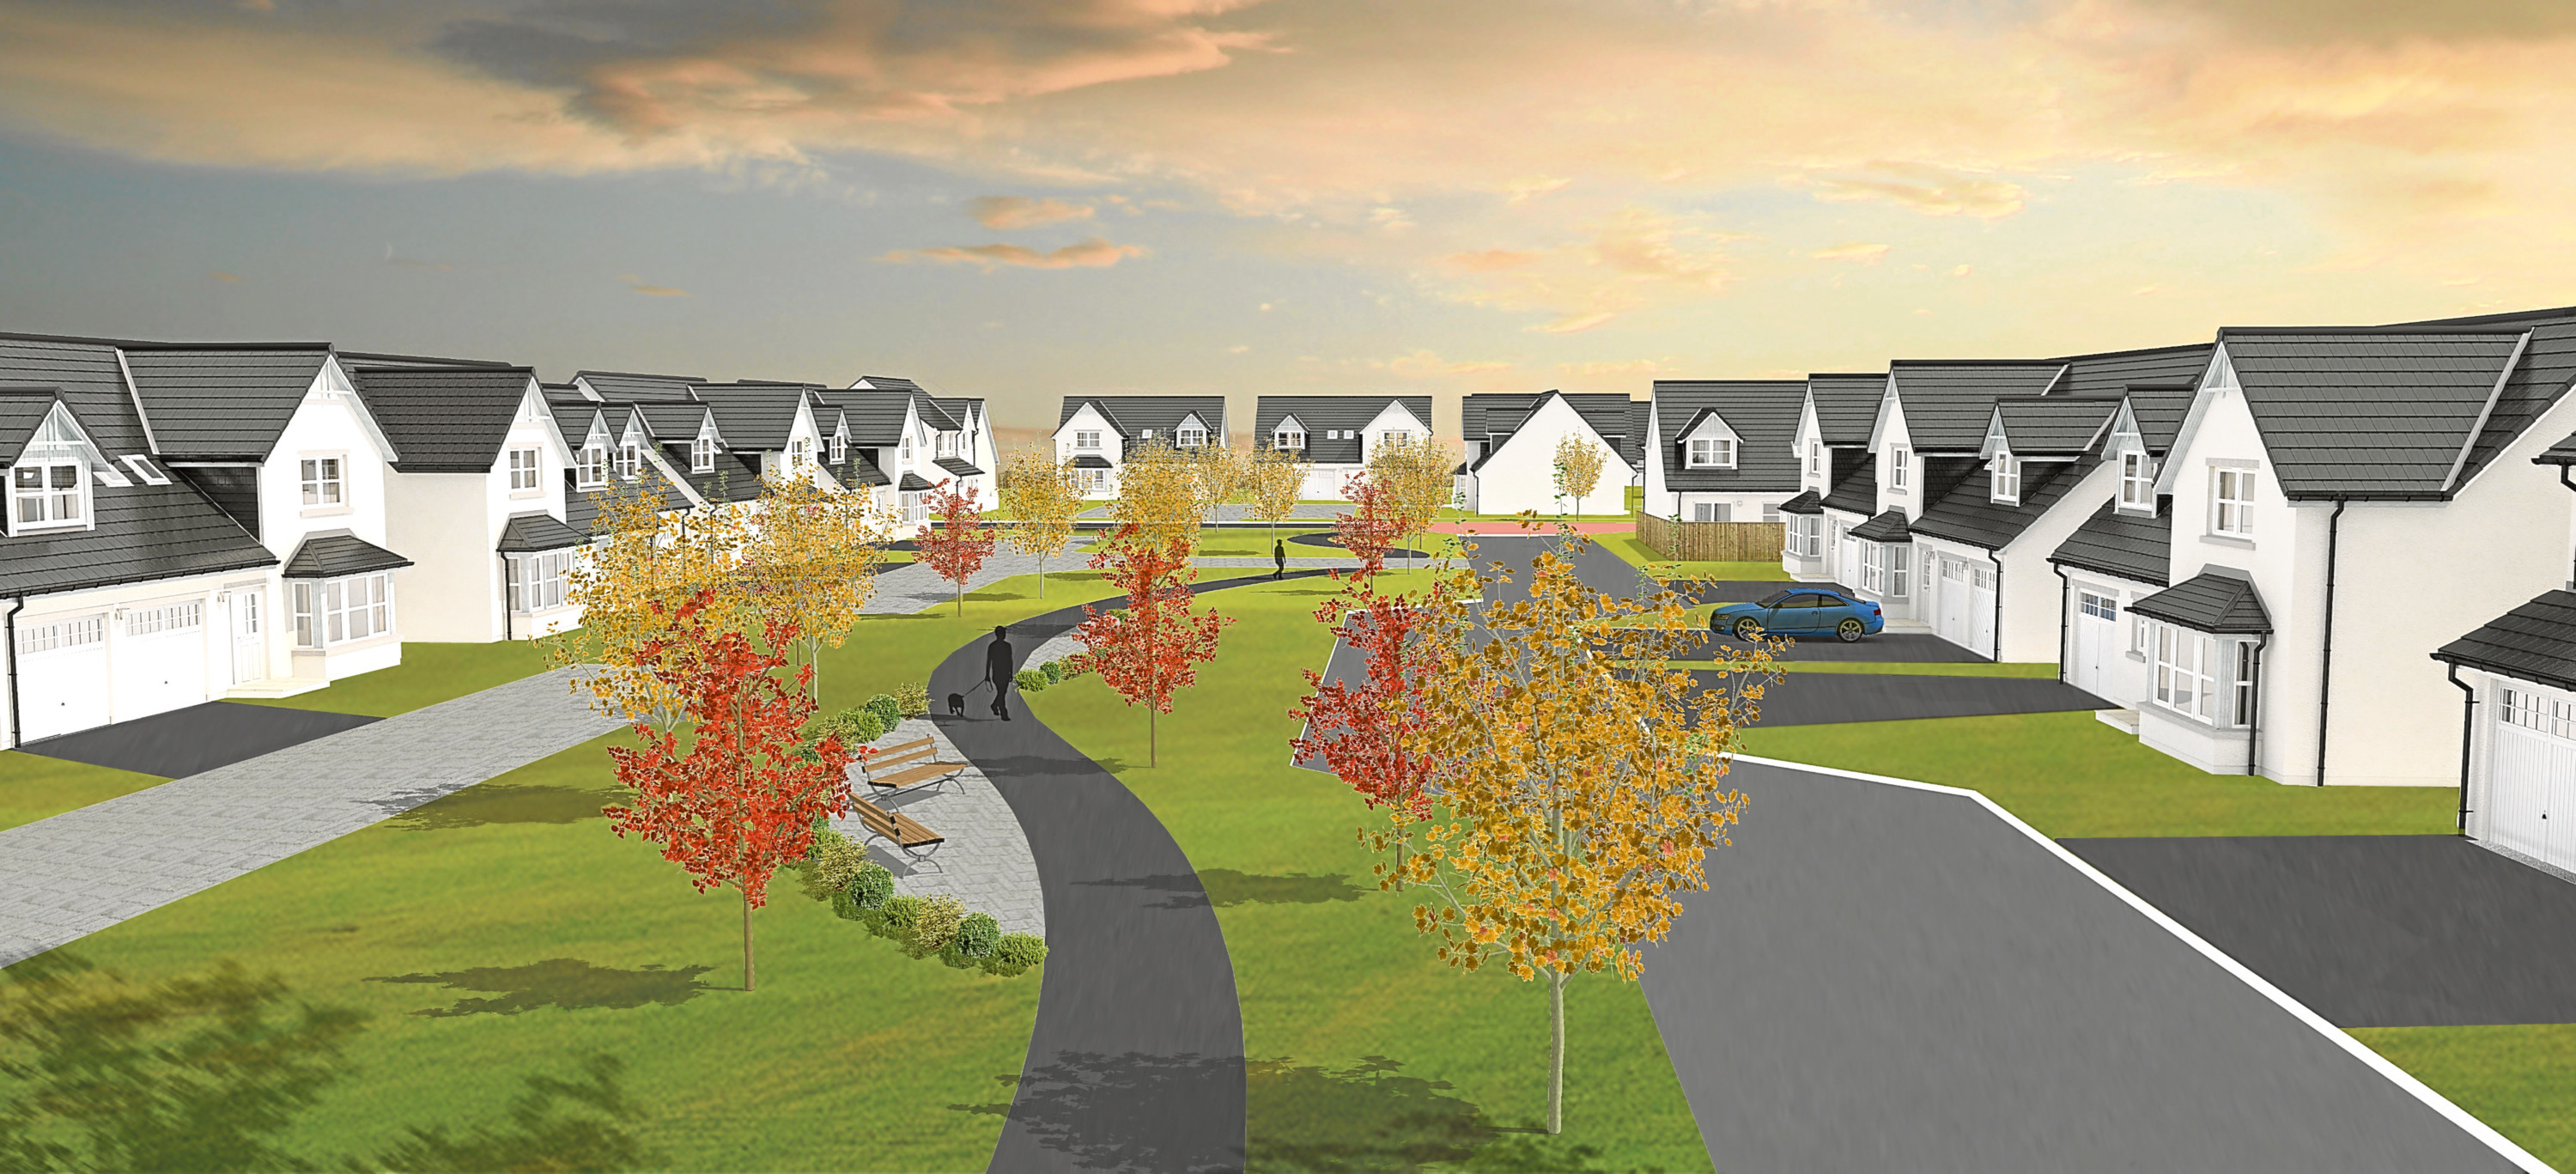 Kirkwood homes has submit plans for 150 new homes at Linlathen